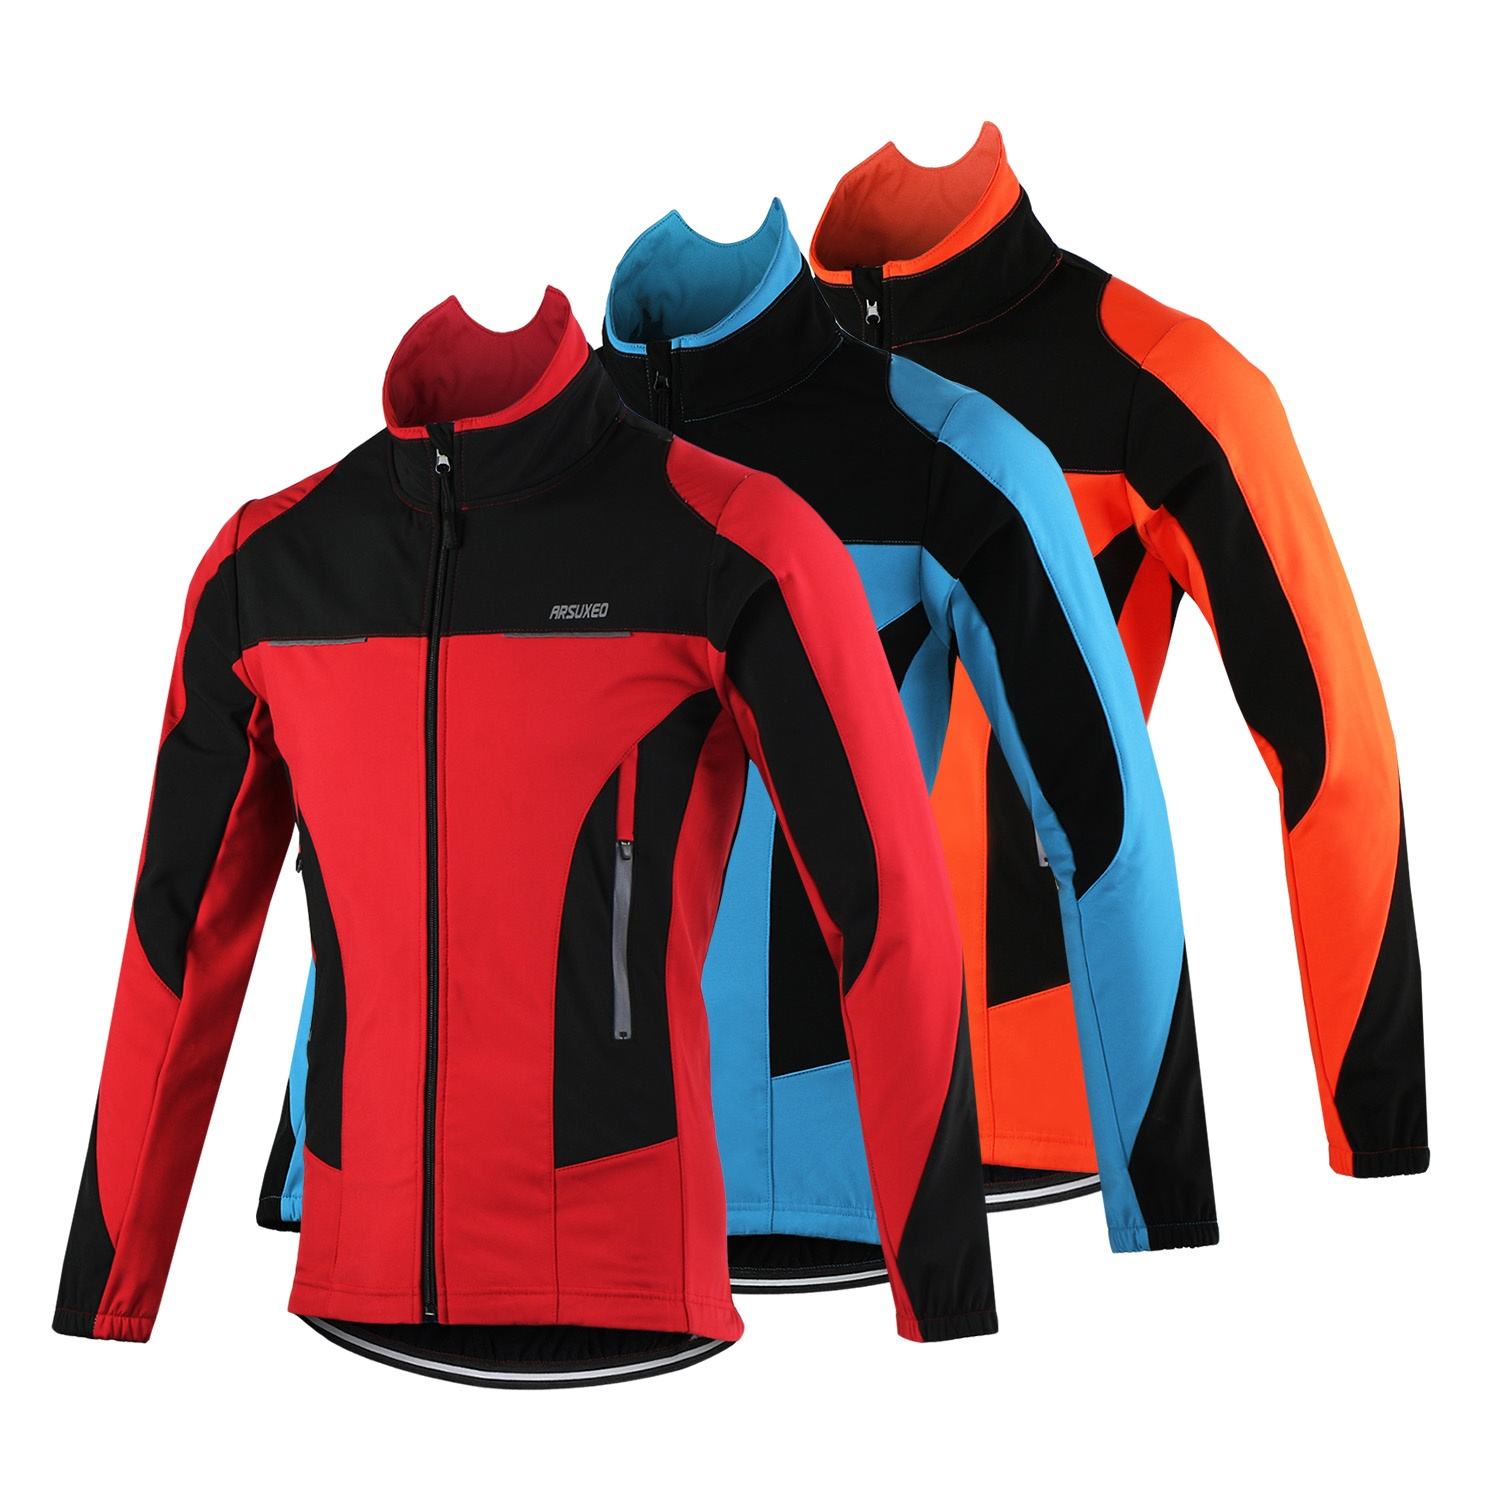 Details about Thermal Cycling Jacket Winter Bicycle Windproof Waterproof Sports  Coat Jersey 4693c9487